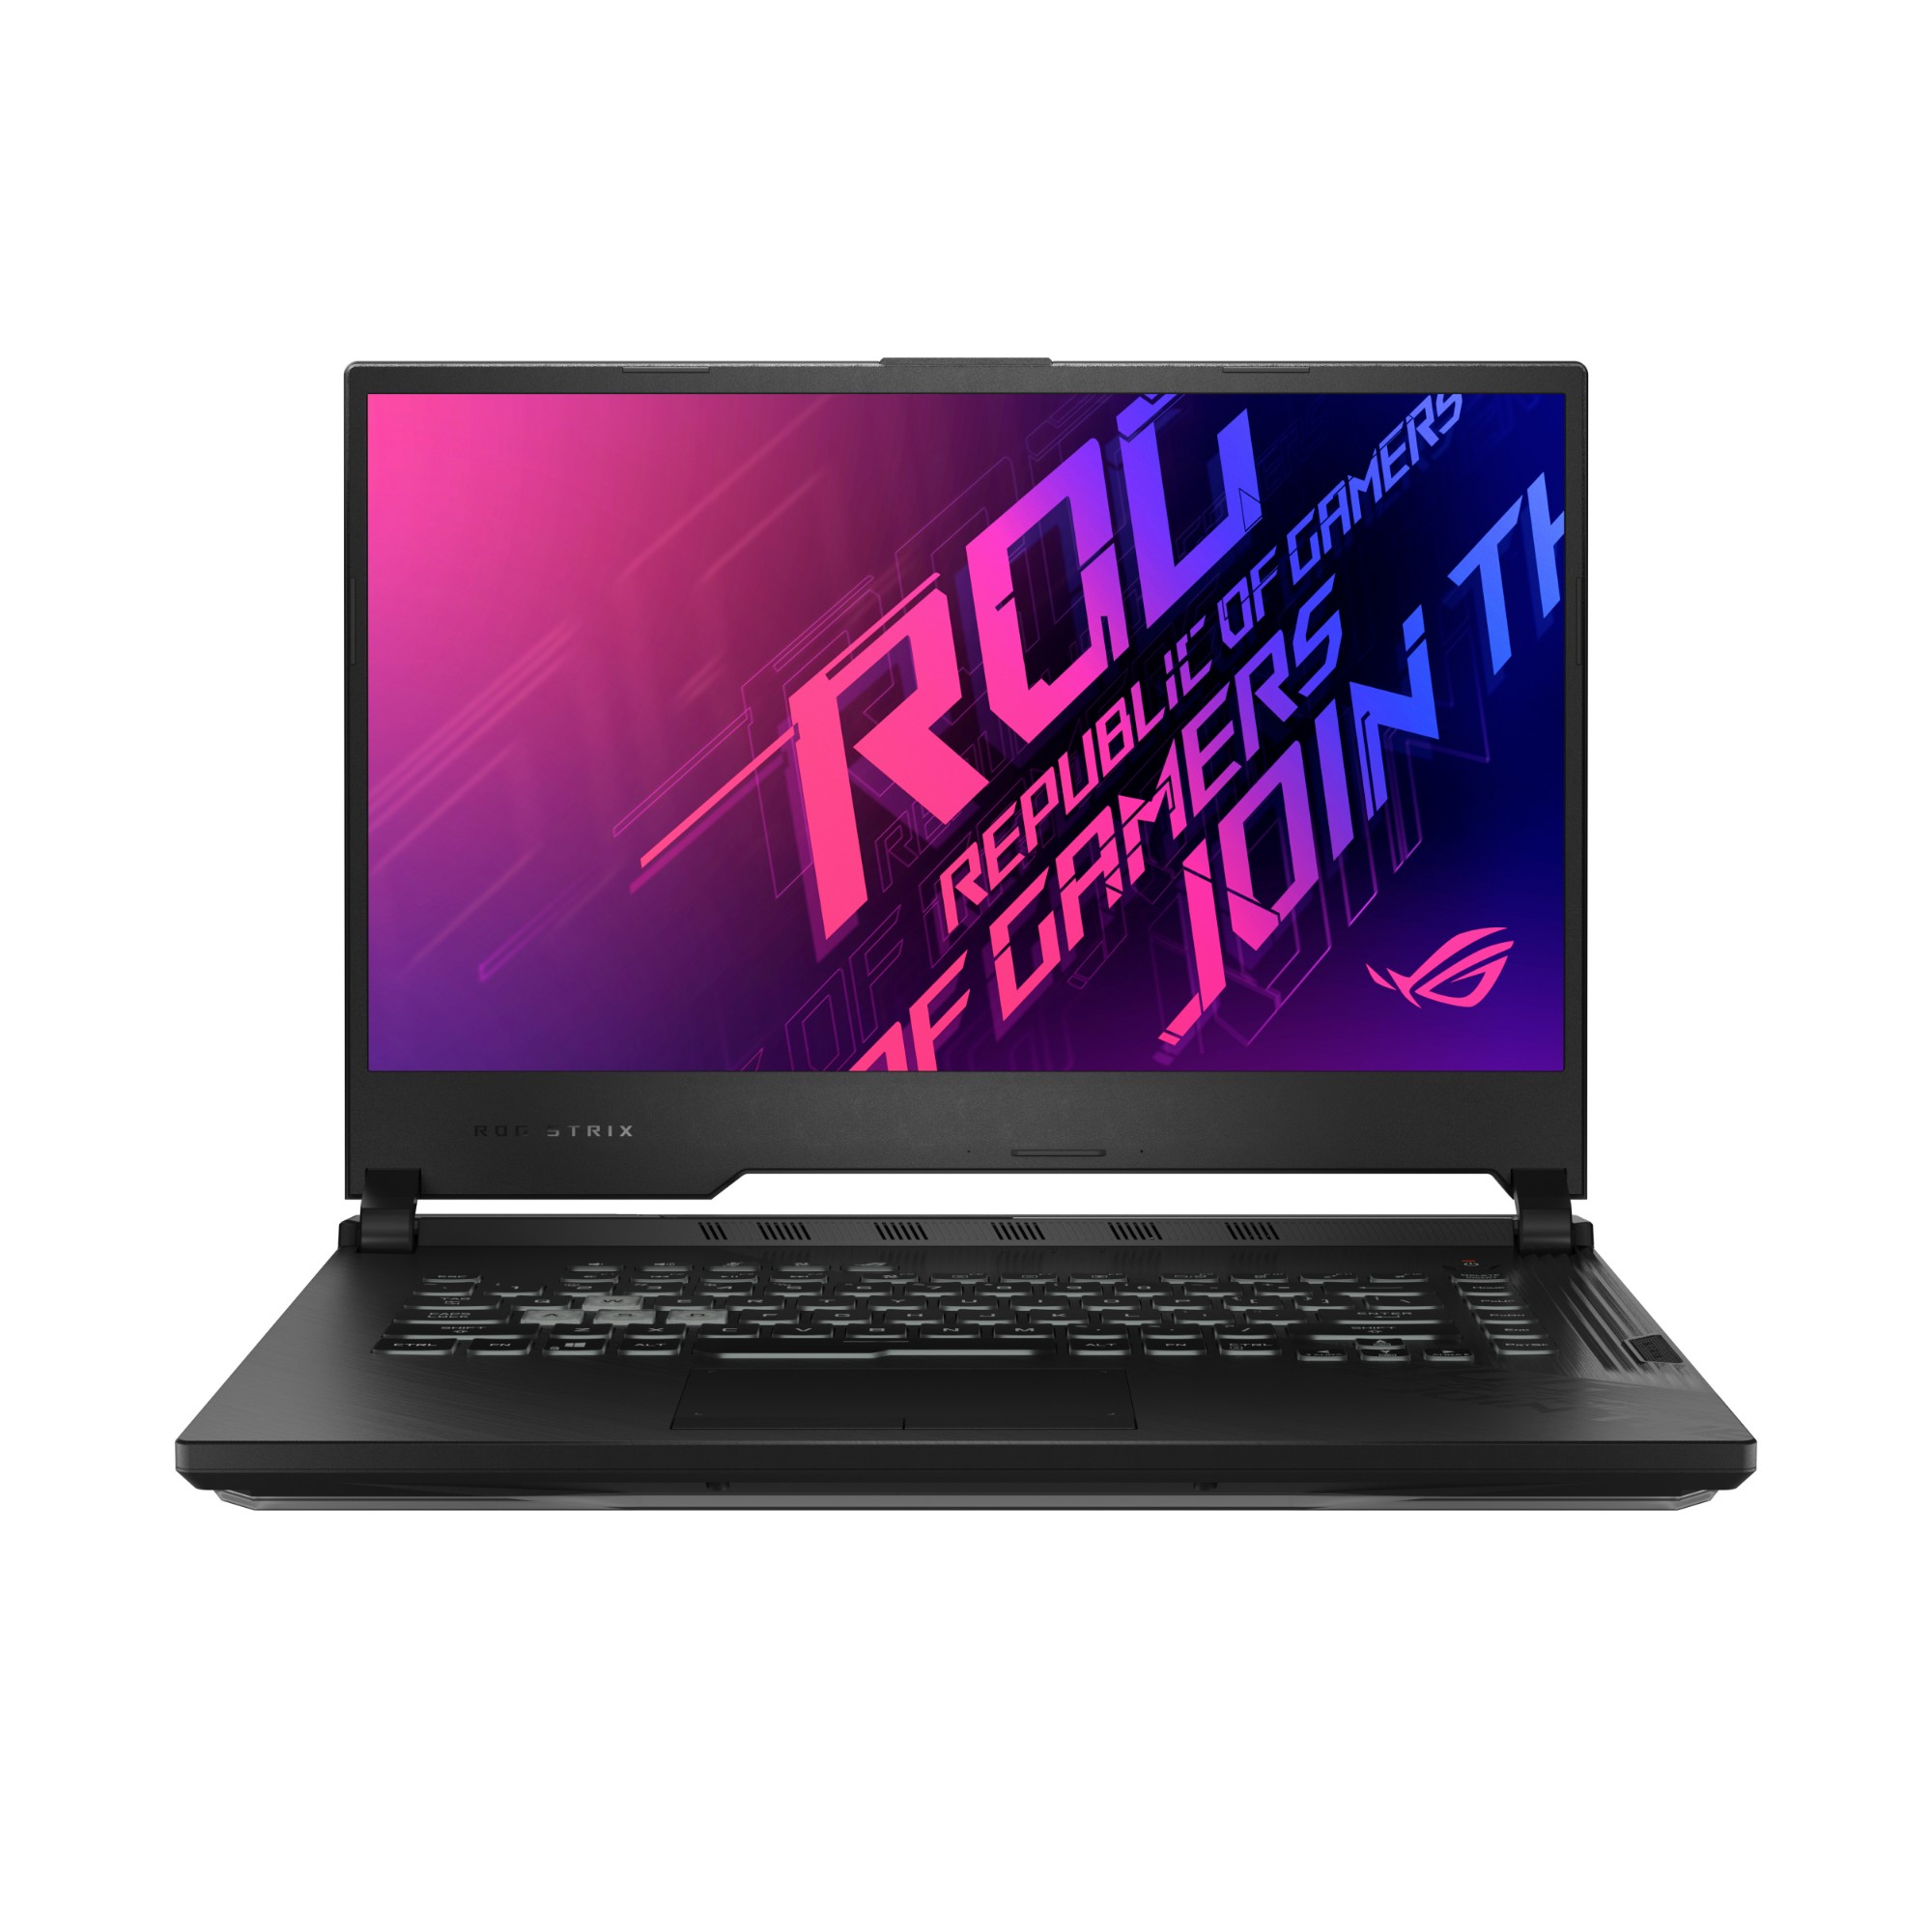 "ASUS ROG Strix G512LV-HN037T notebook Black 39.6 cm (15.6"") 1920 x 1080 pixels 10th gen Intel® Core™ i7 16 GB DDR4-SDRAM 512 GB SSD NVIDIA® GeForce RTX™ 2060 Wi-Fi 6 (802.11ax) Windows 10"